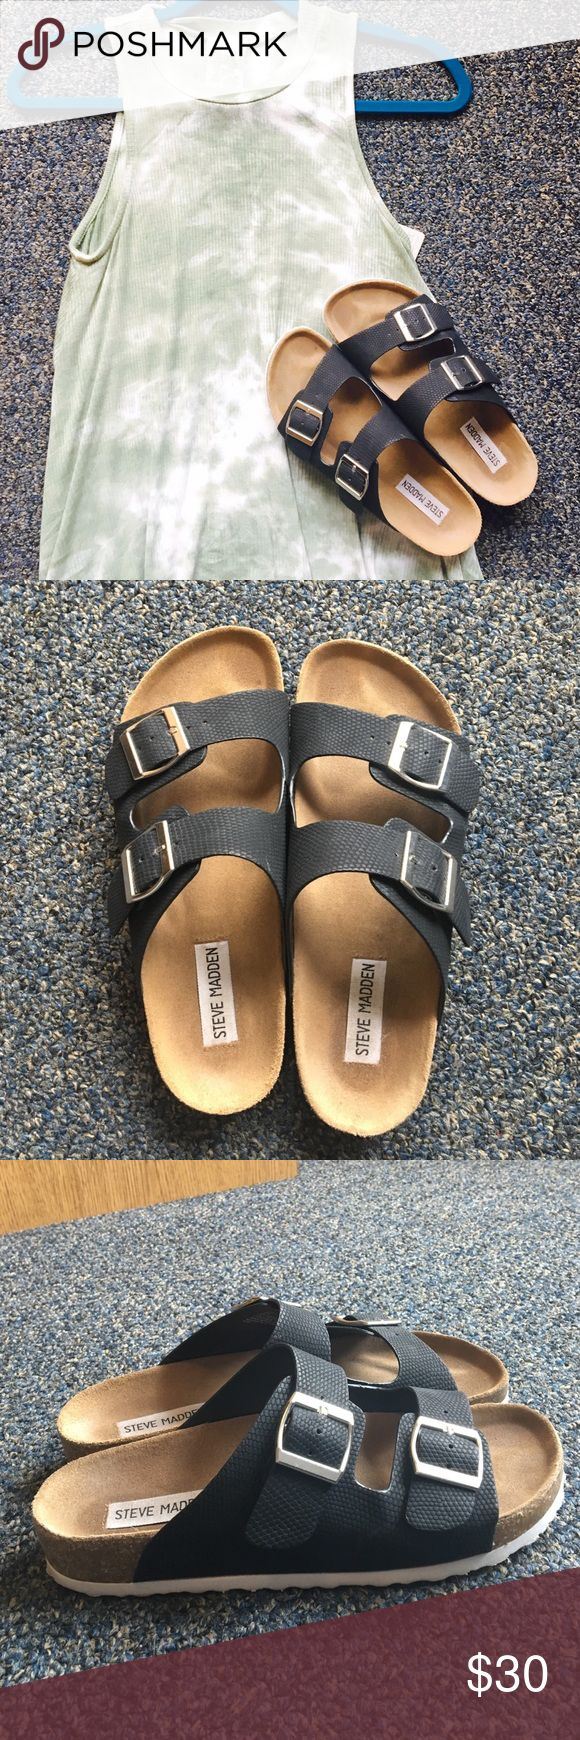 Steve Madden Birkenstocks Birkenstock style by Steve Madden. Only worn a handful of times so in great condition! NOTE: THIS ITEM CAN ONLY BE BUNDLED WITH OTHER ITEMS WITH A RED DOT AS IT IS AT A DIFFERENT LOCATION. Sorry for the inconvenience Steve Madden Shoes Sandals